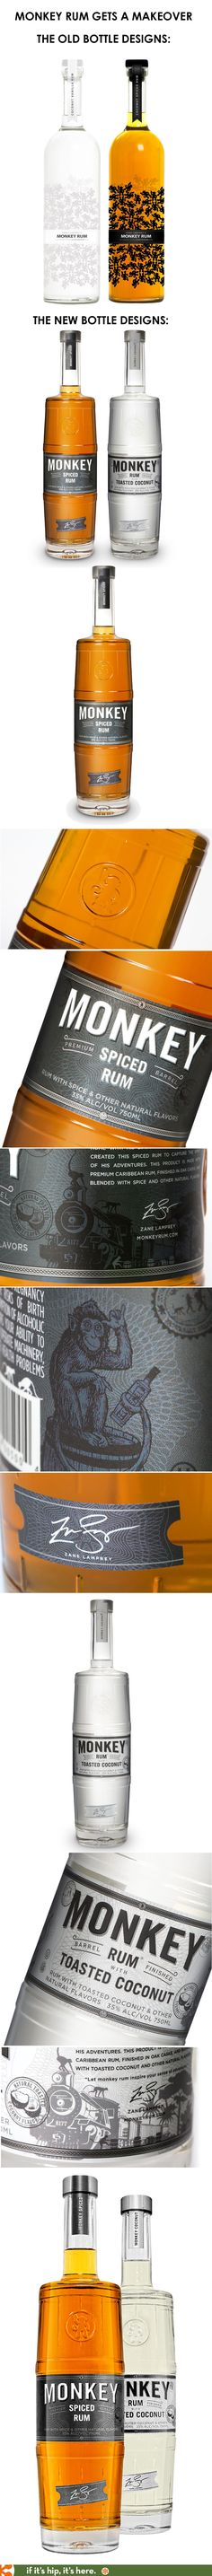 """Zane Lamprey's Monkey Rum bottles get a makeover by Identitica. Now, they've been designed to simulate the old """"Barrel of Monkeys"""" Game (it's barrel finished rum). I actually liked the original bottles better."""